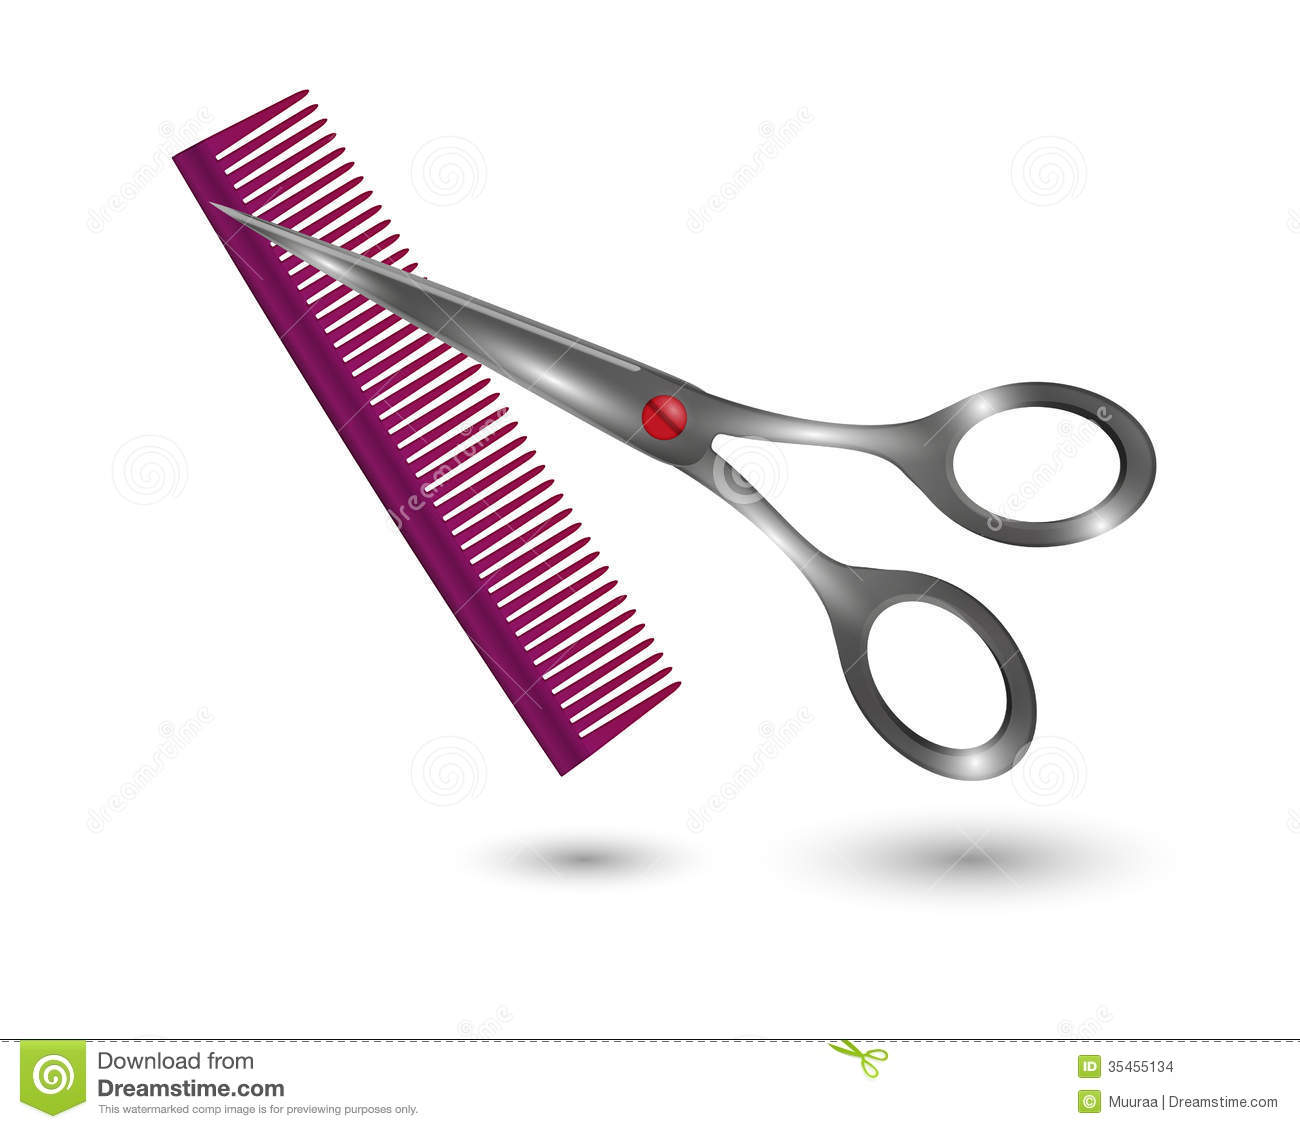 Small Comb And Scissors Stock Images - Image: 35455134